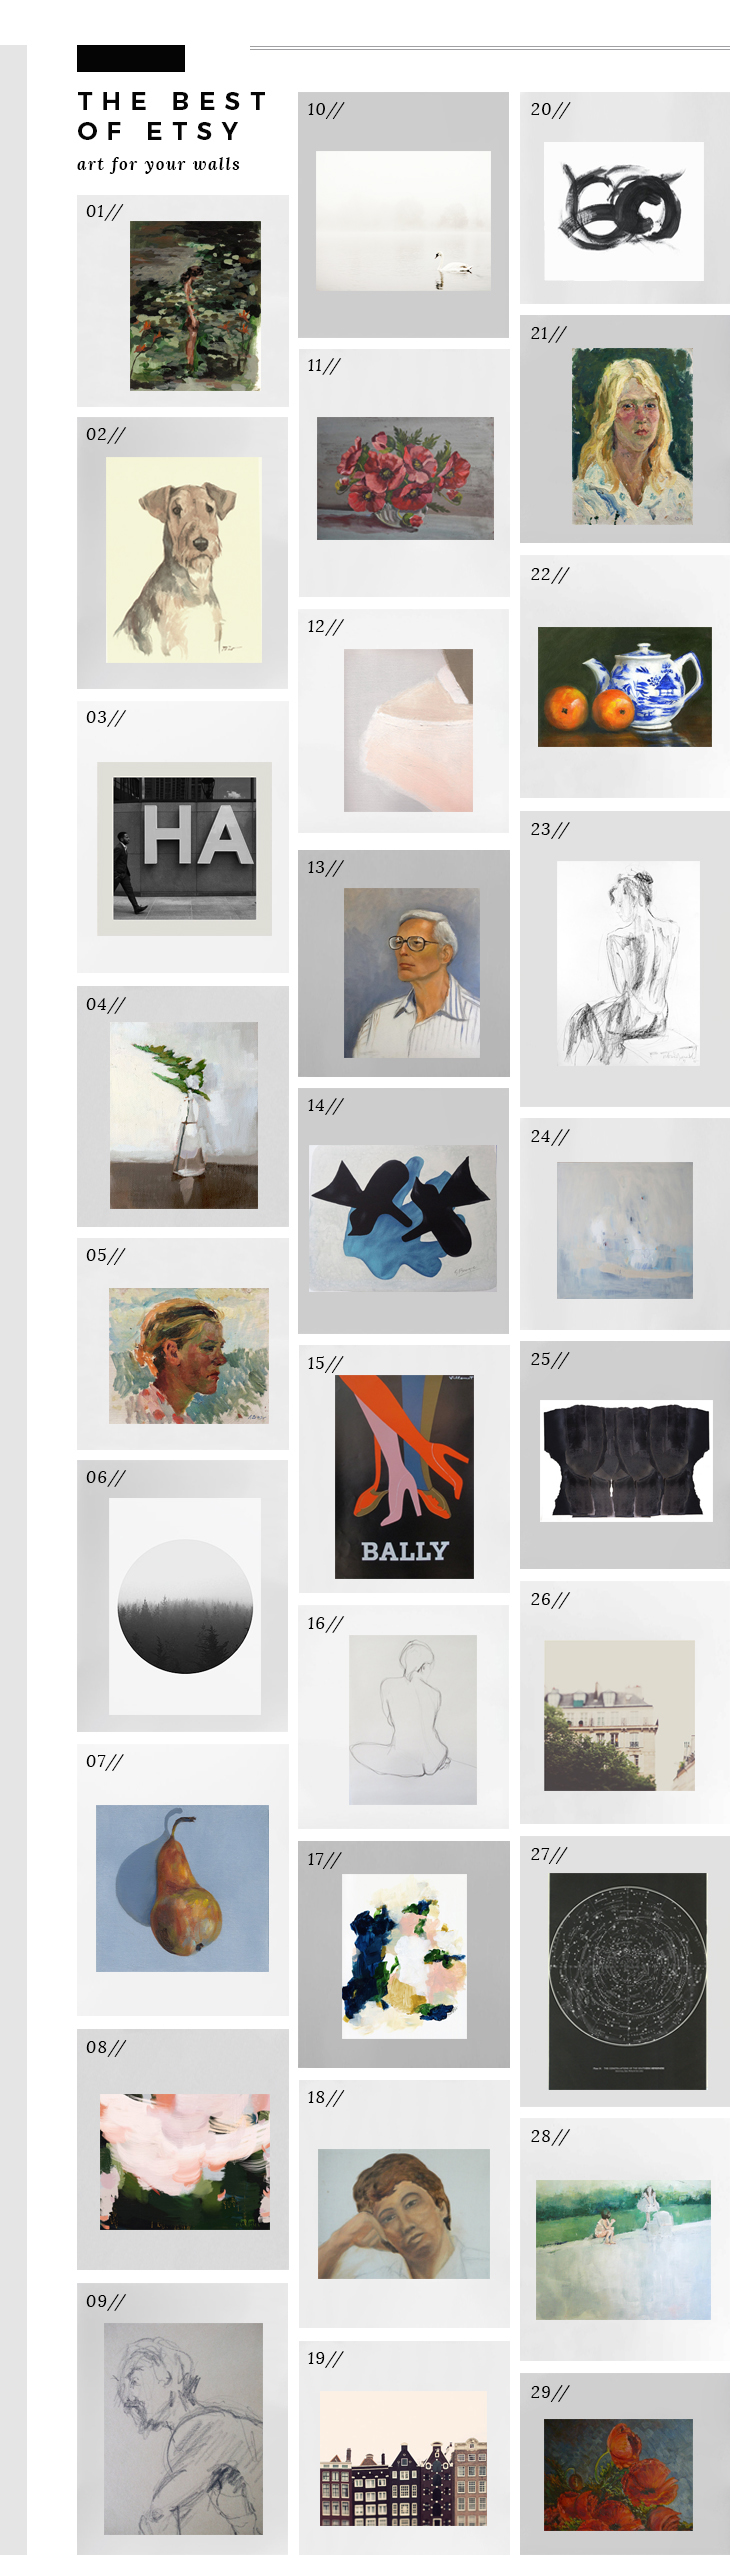 Best of Etsy - Art